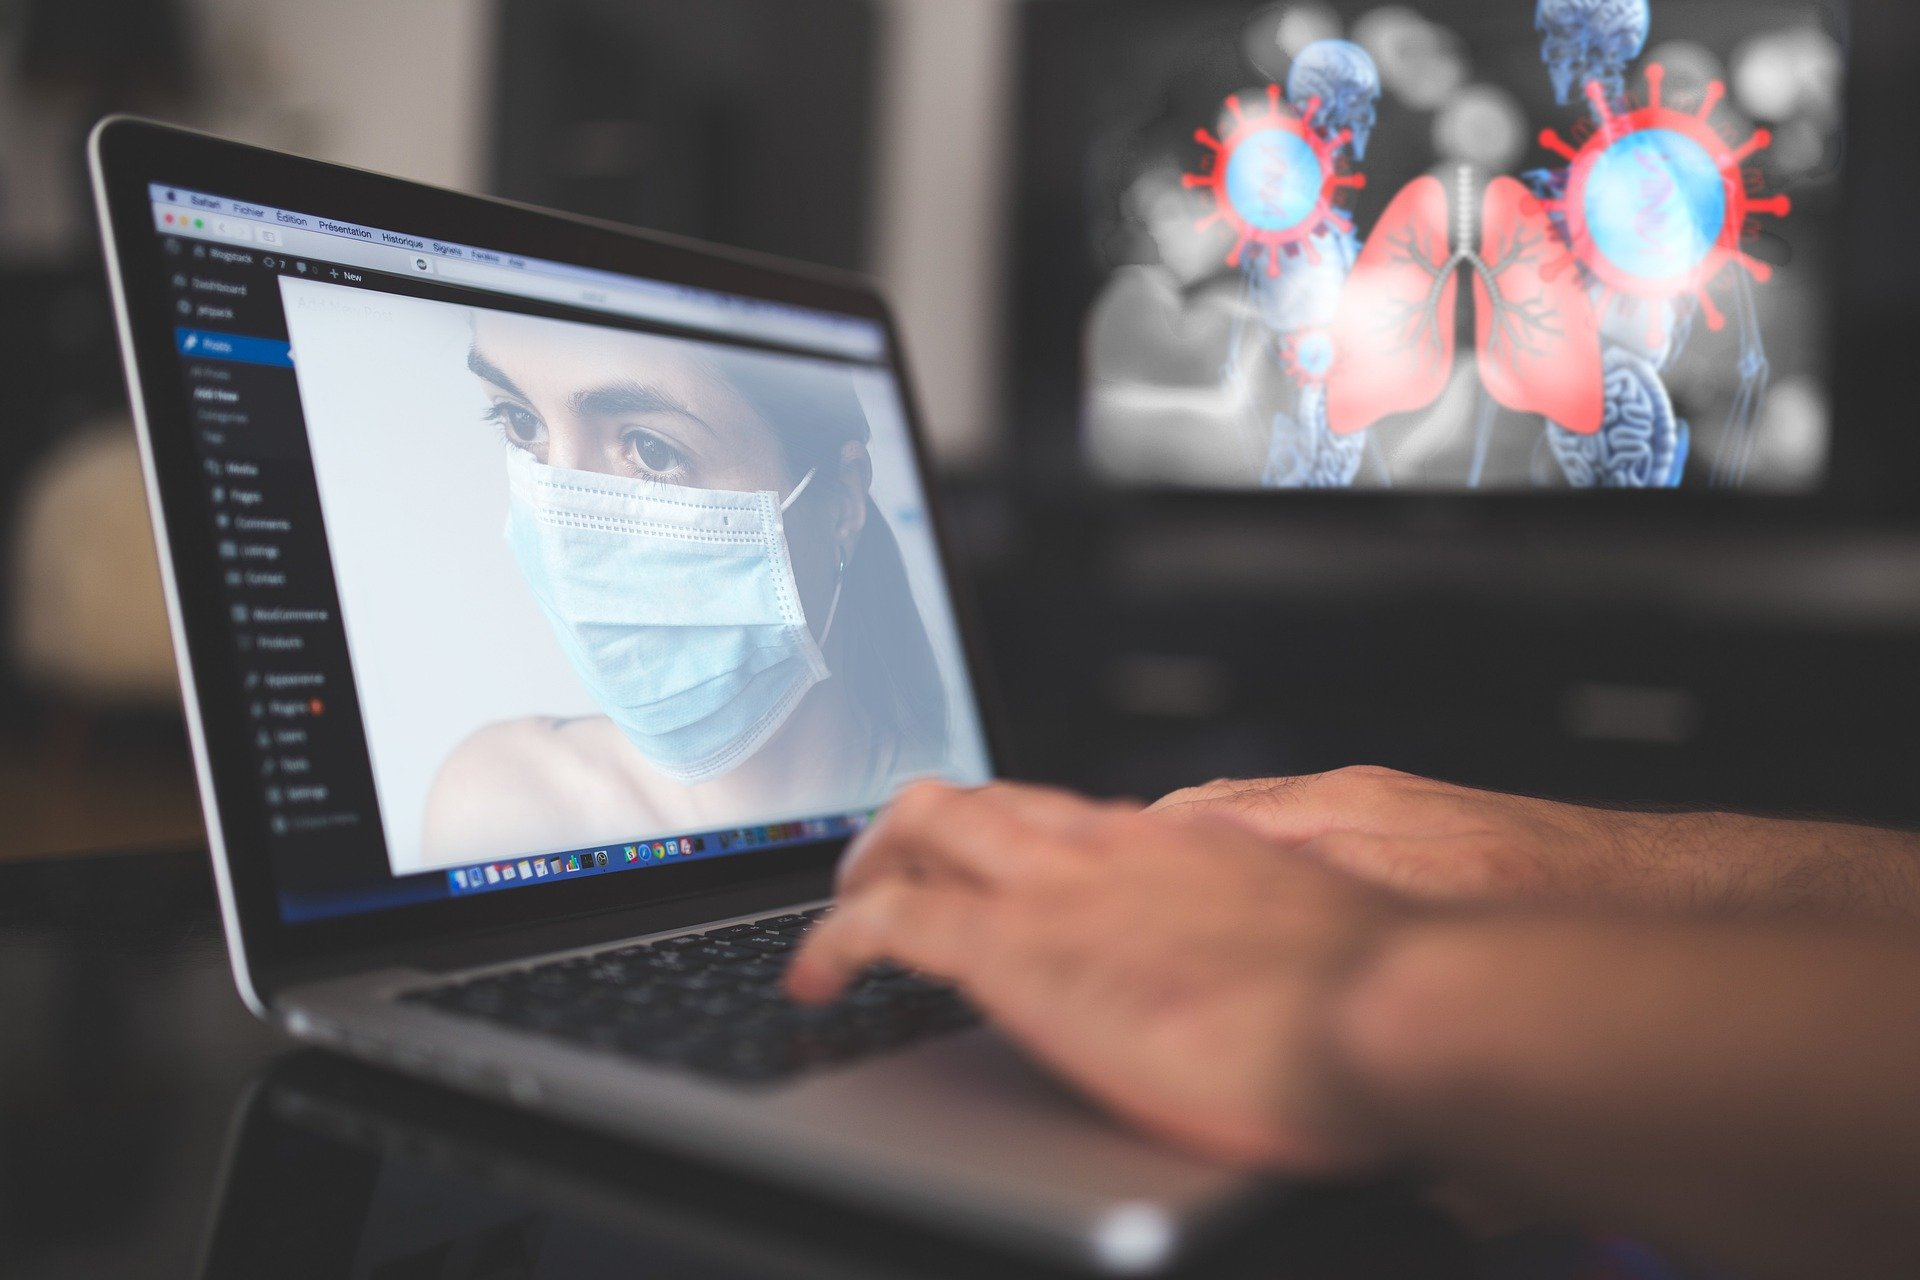 Laptop showing image of woman in a surgical mask